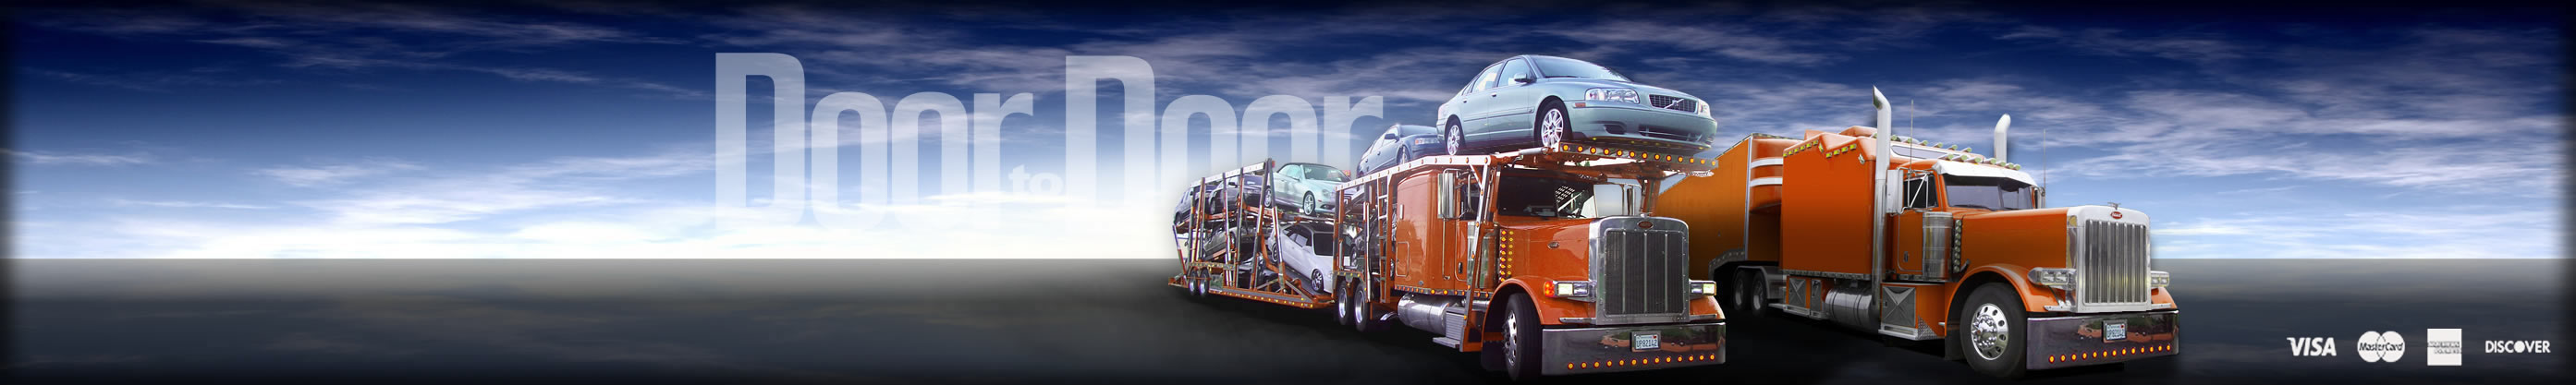 1_door_to_door_auto_transport_trucks-1